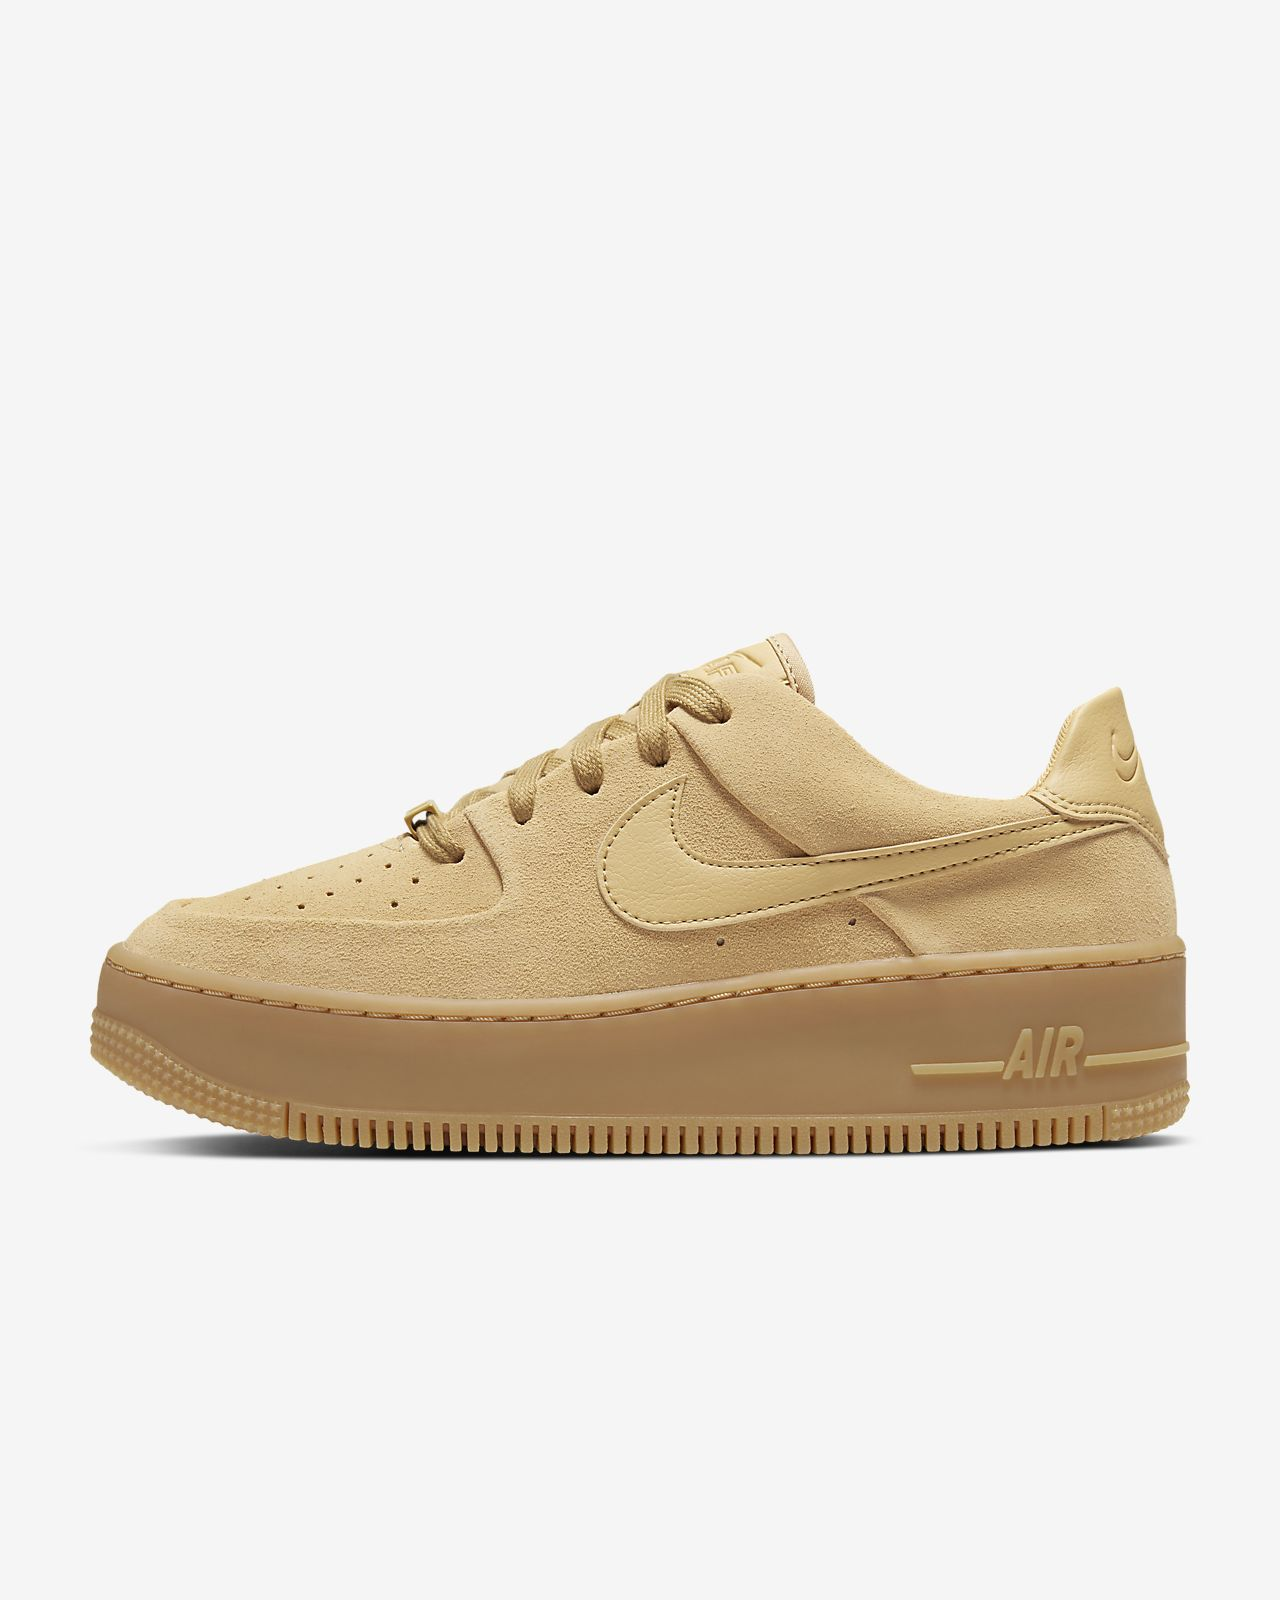 Nike Air Force 1 Sage Low Women's | JD Sports Ireland